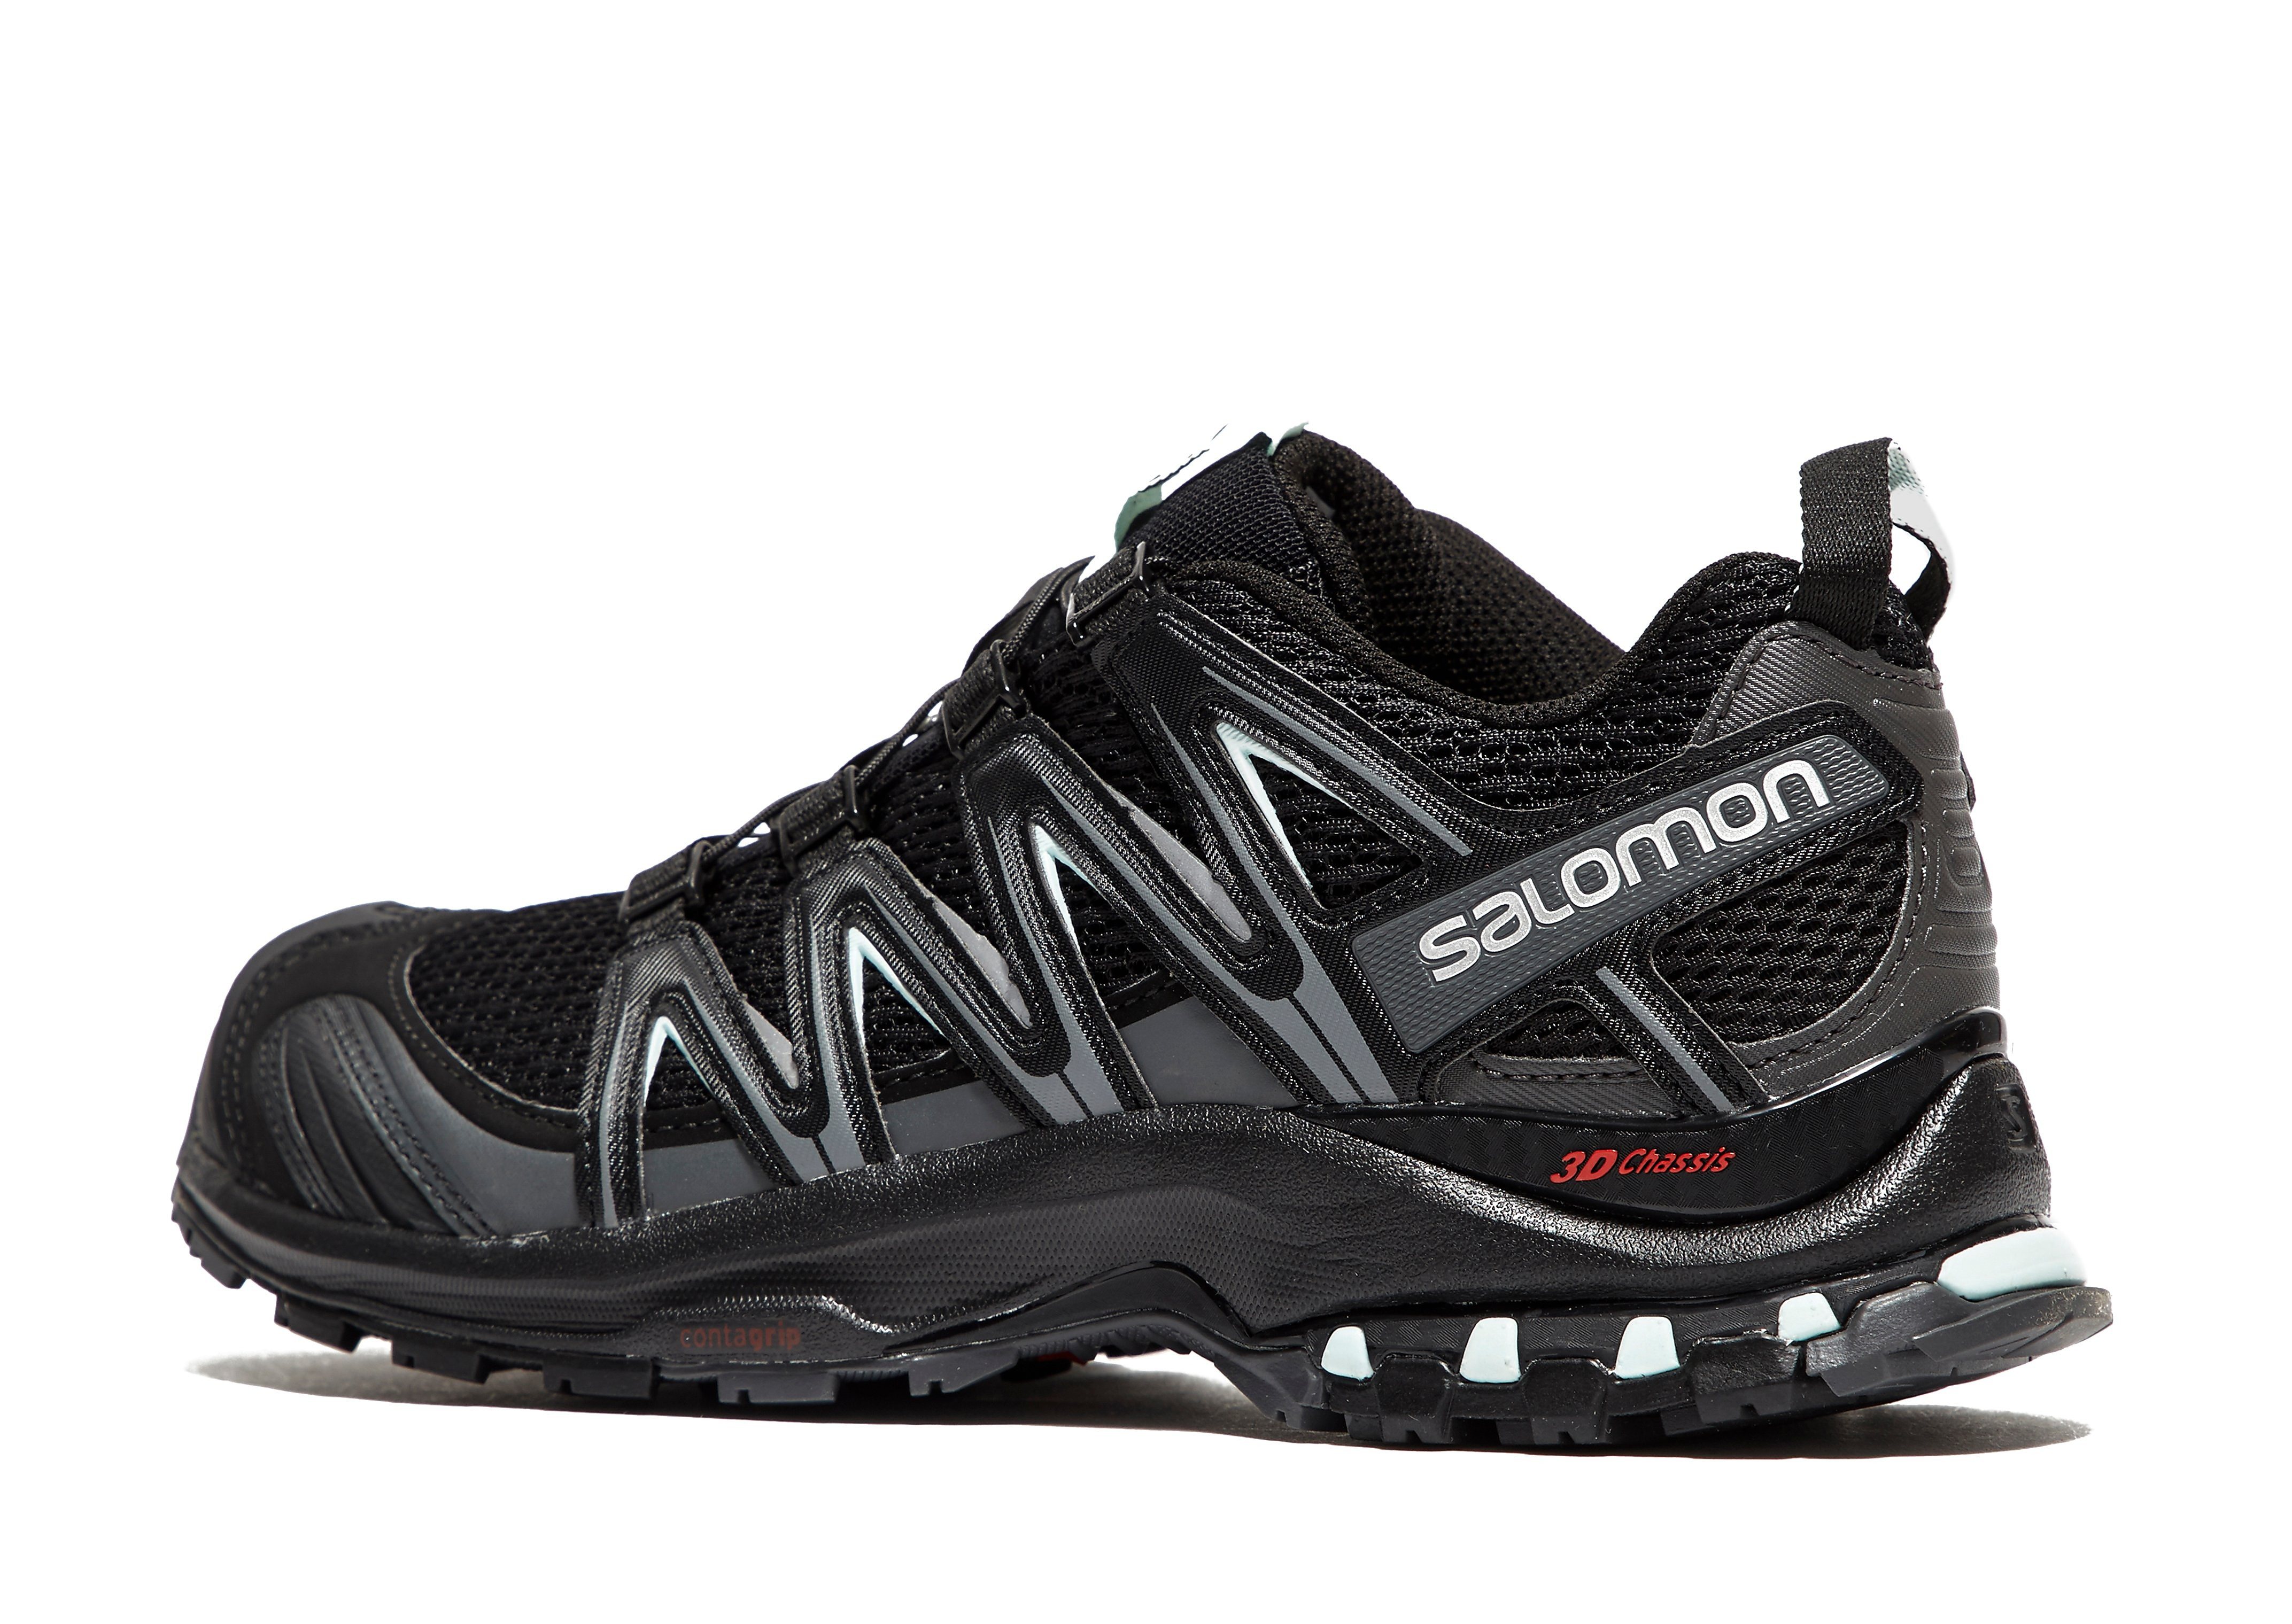 Salomon XA Pro 3D Trail Running Shoe Women's